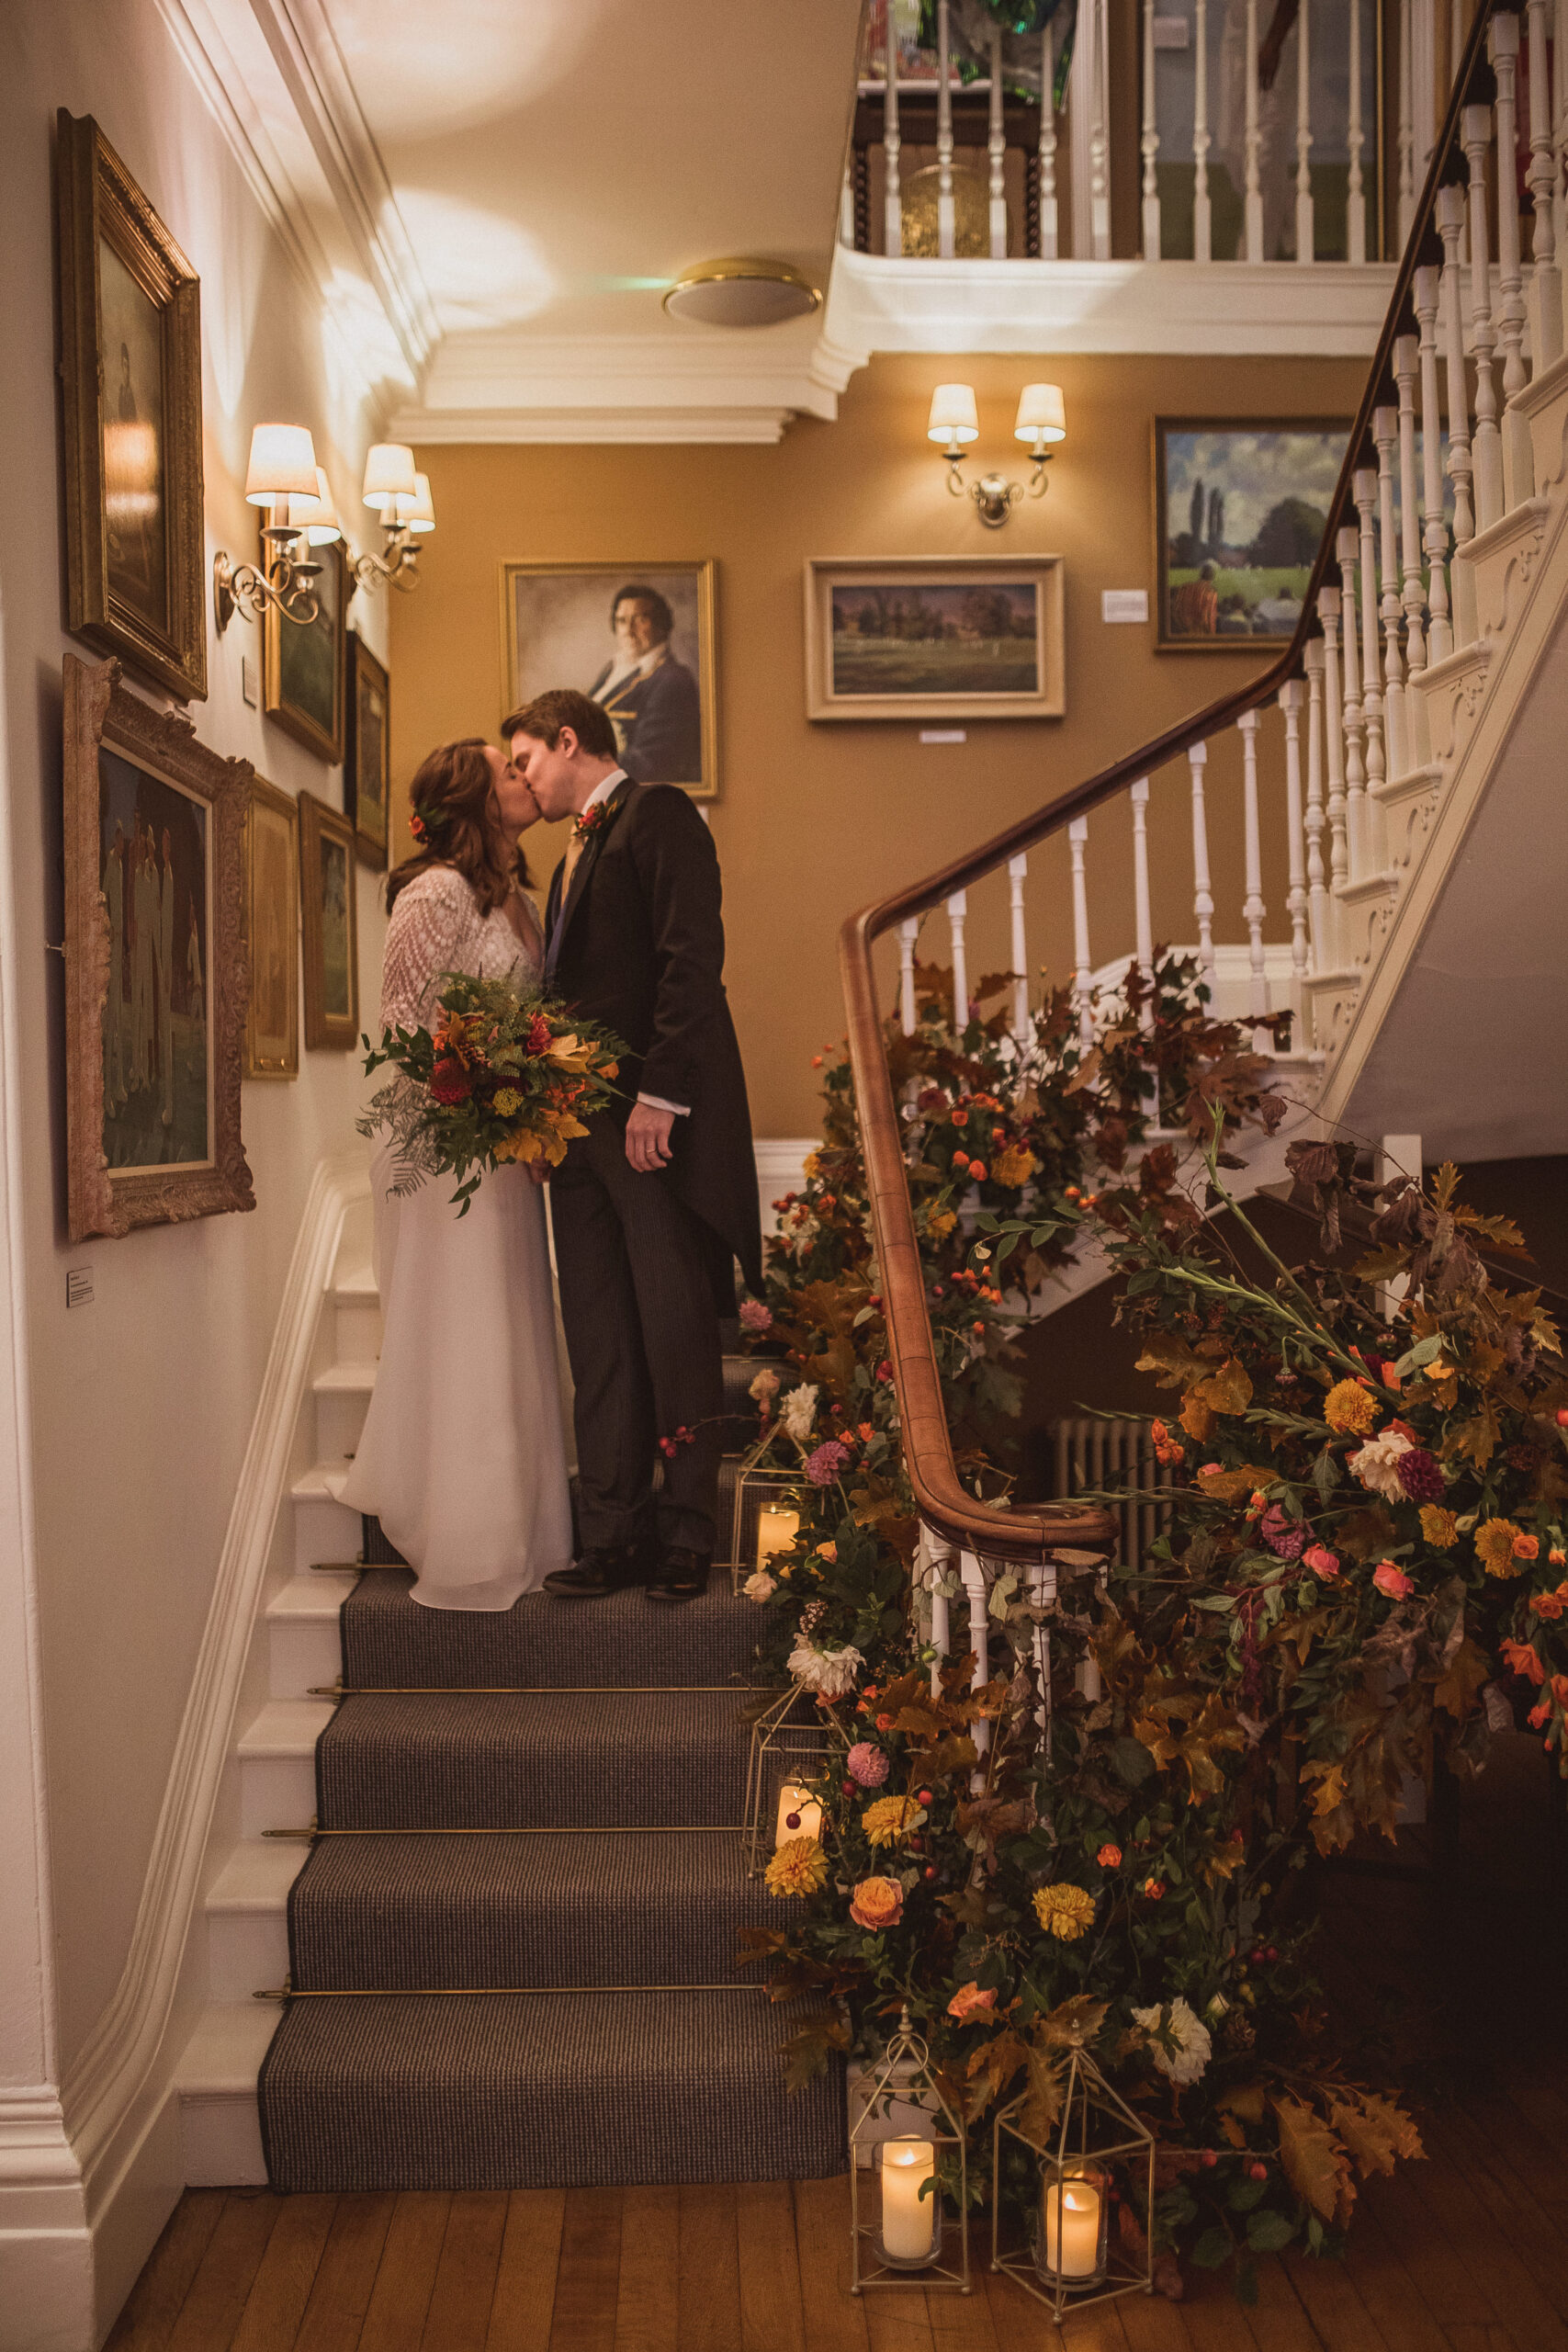 bride and groom kissing on staircase autumn wedding floral installation with lanterns